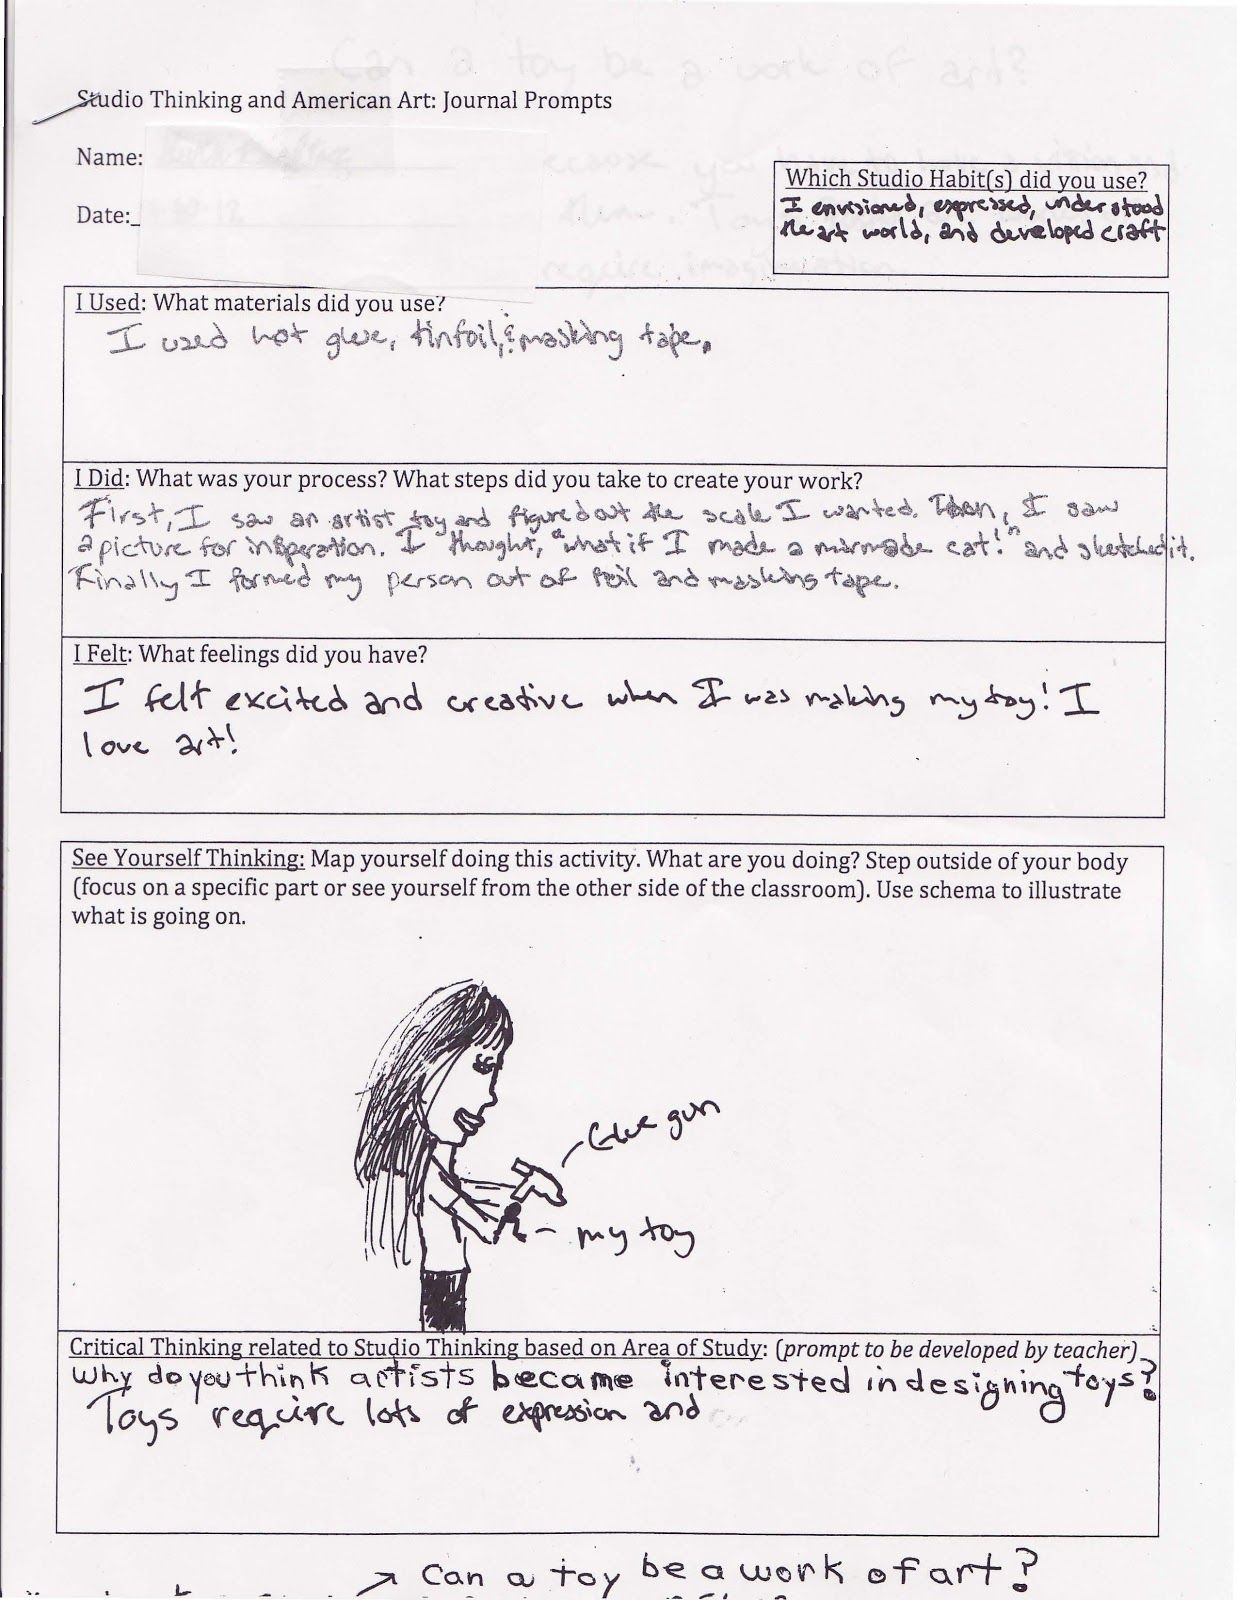 Student Reflection Every Art Every Child